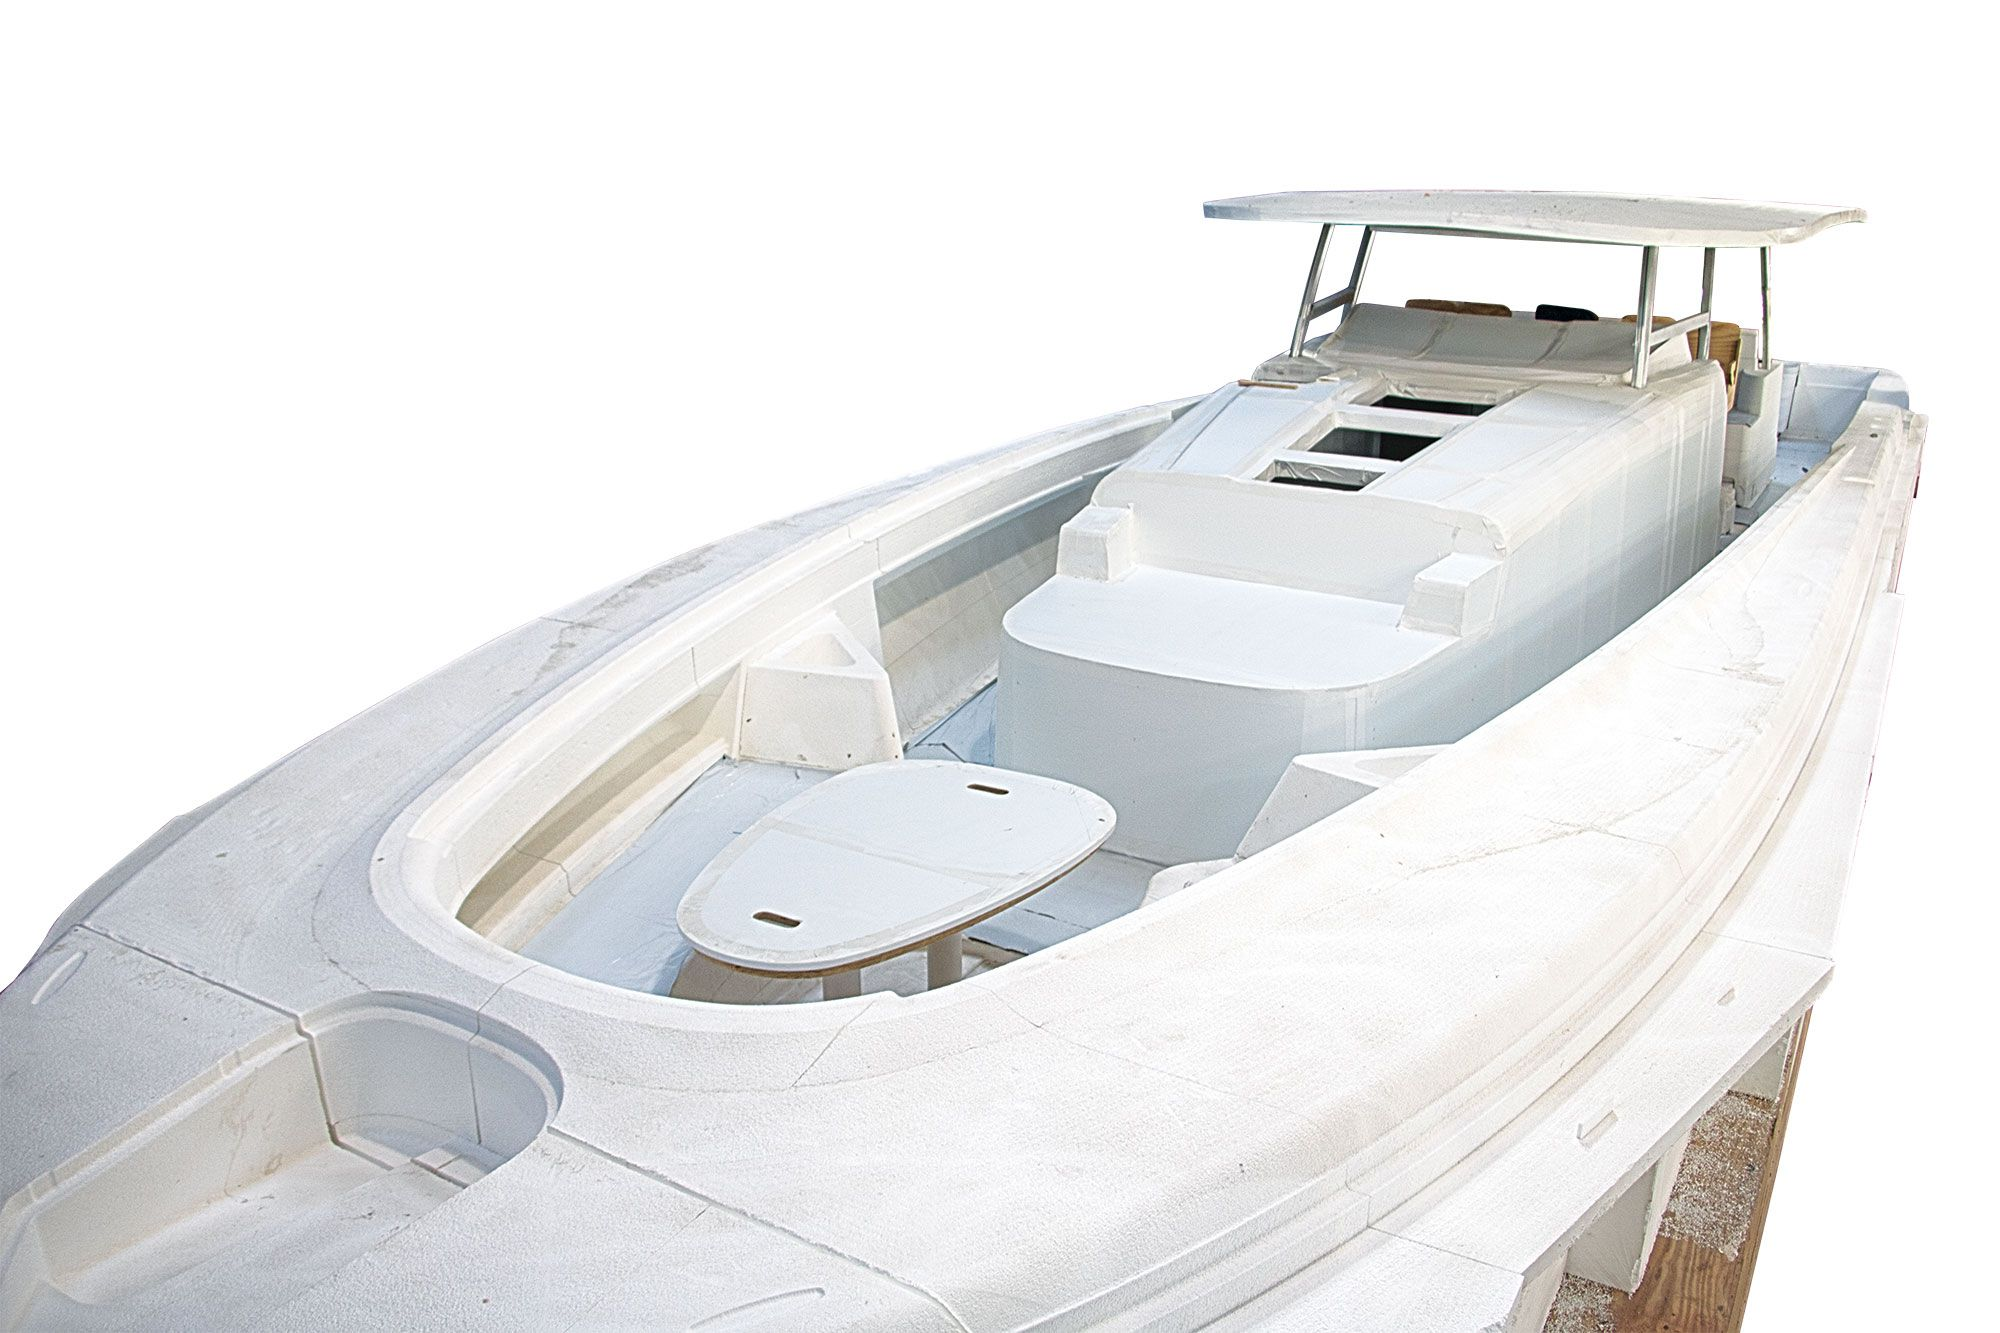 The World's Largest Center Console | Boating Magazine